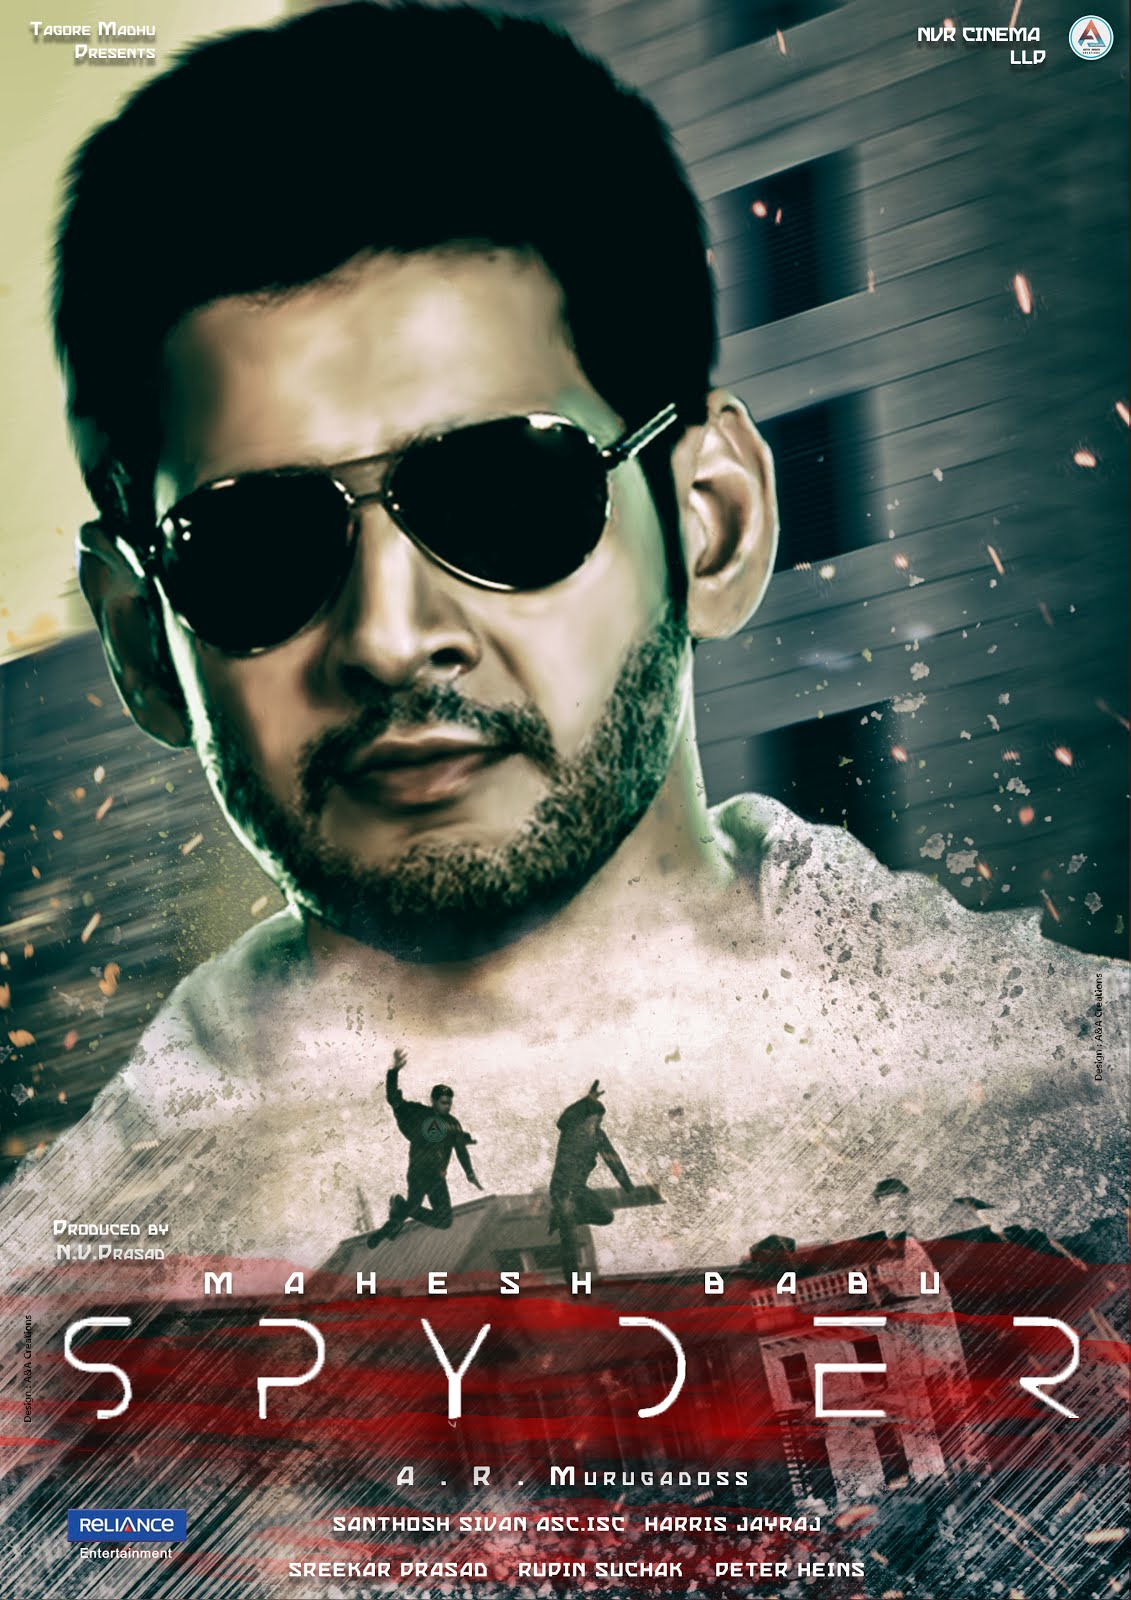 Spyder (2017) Dual Audio 720p UNCUT HDRip x264 [Hindi + Telugu] 1.6GB